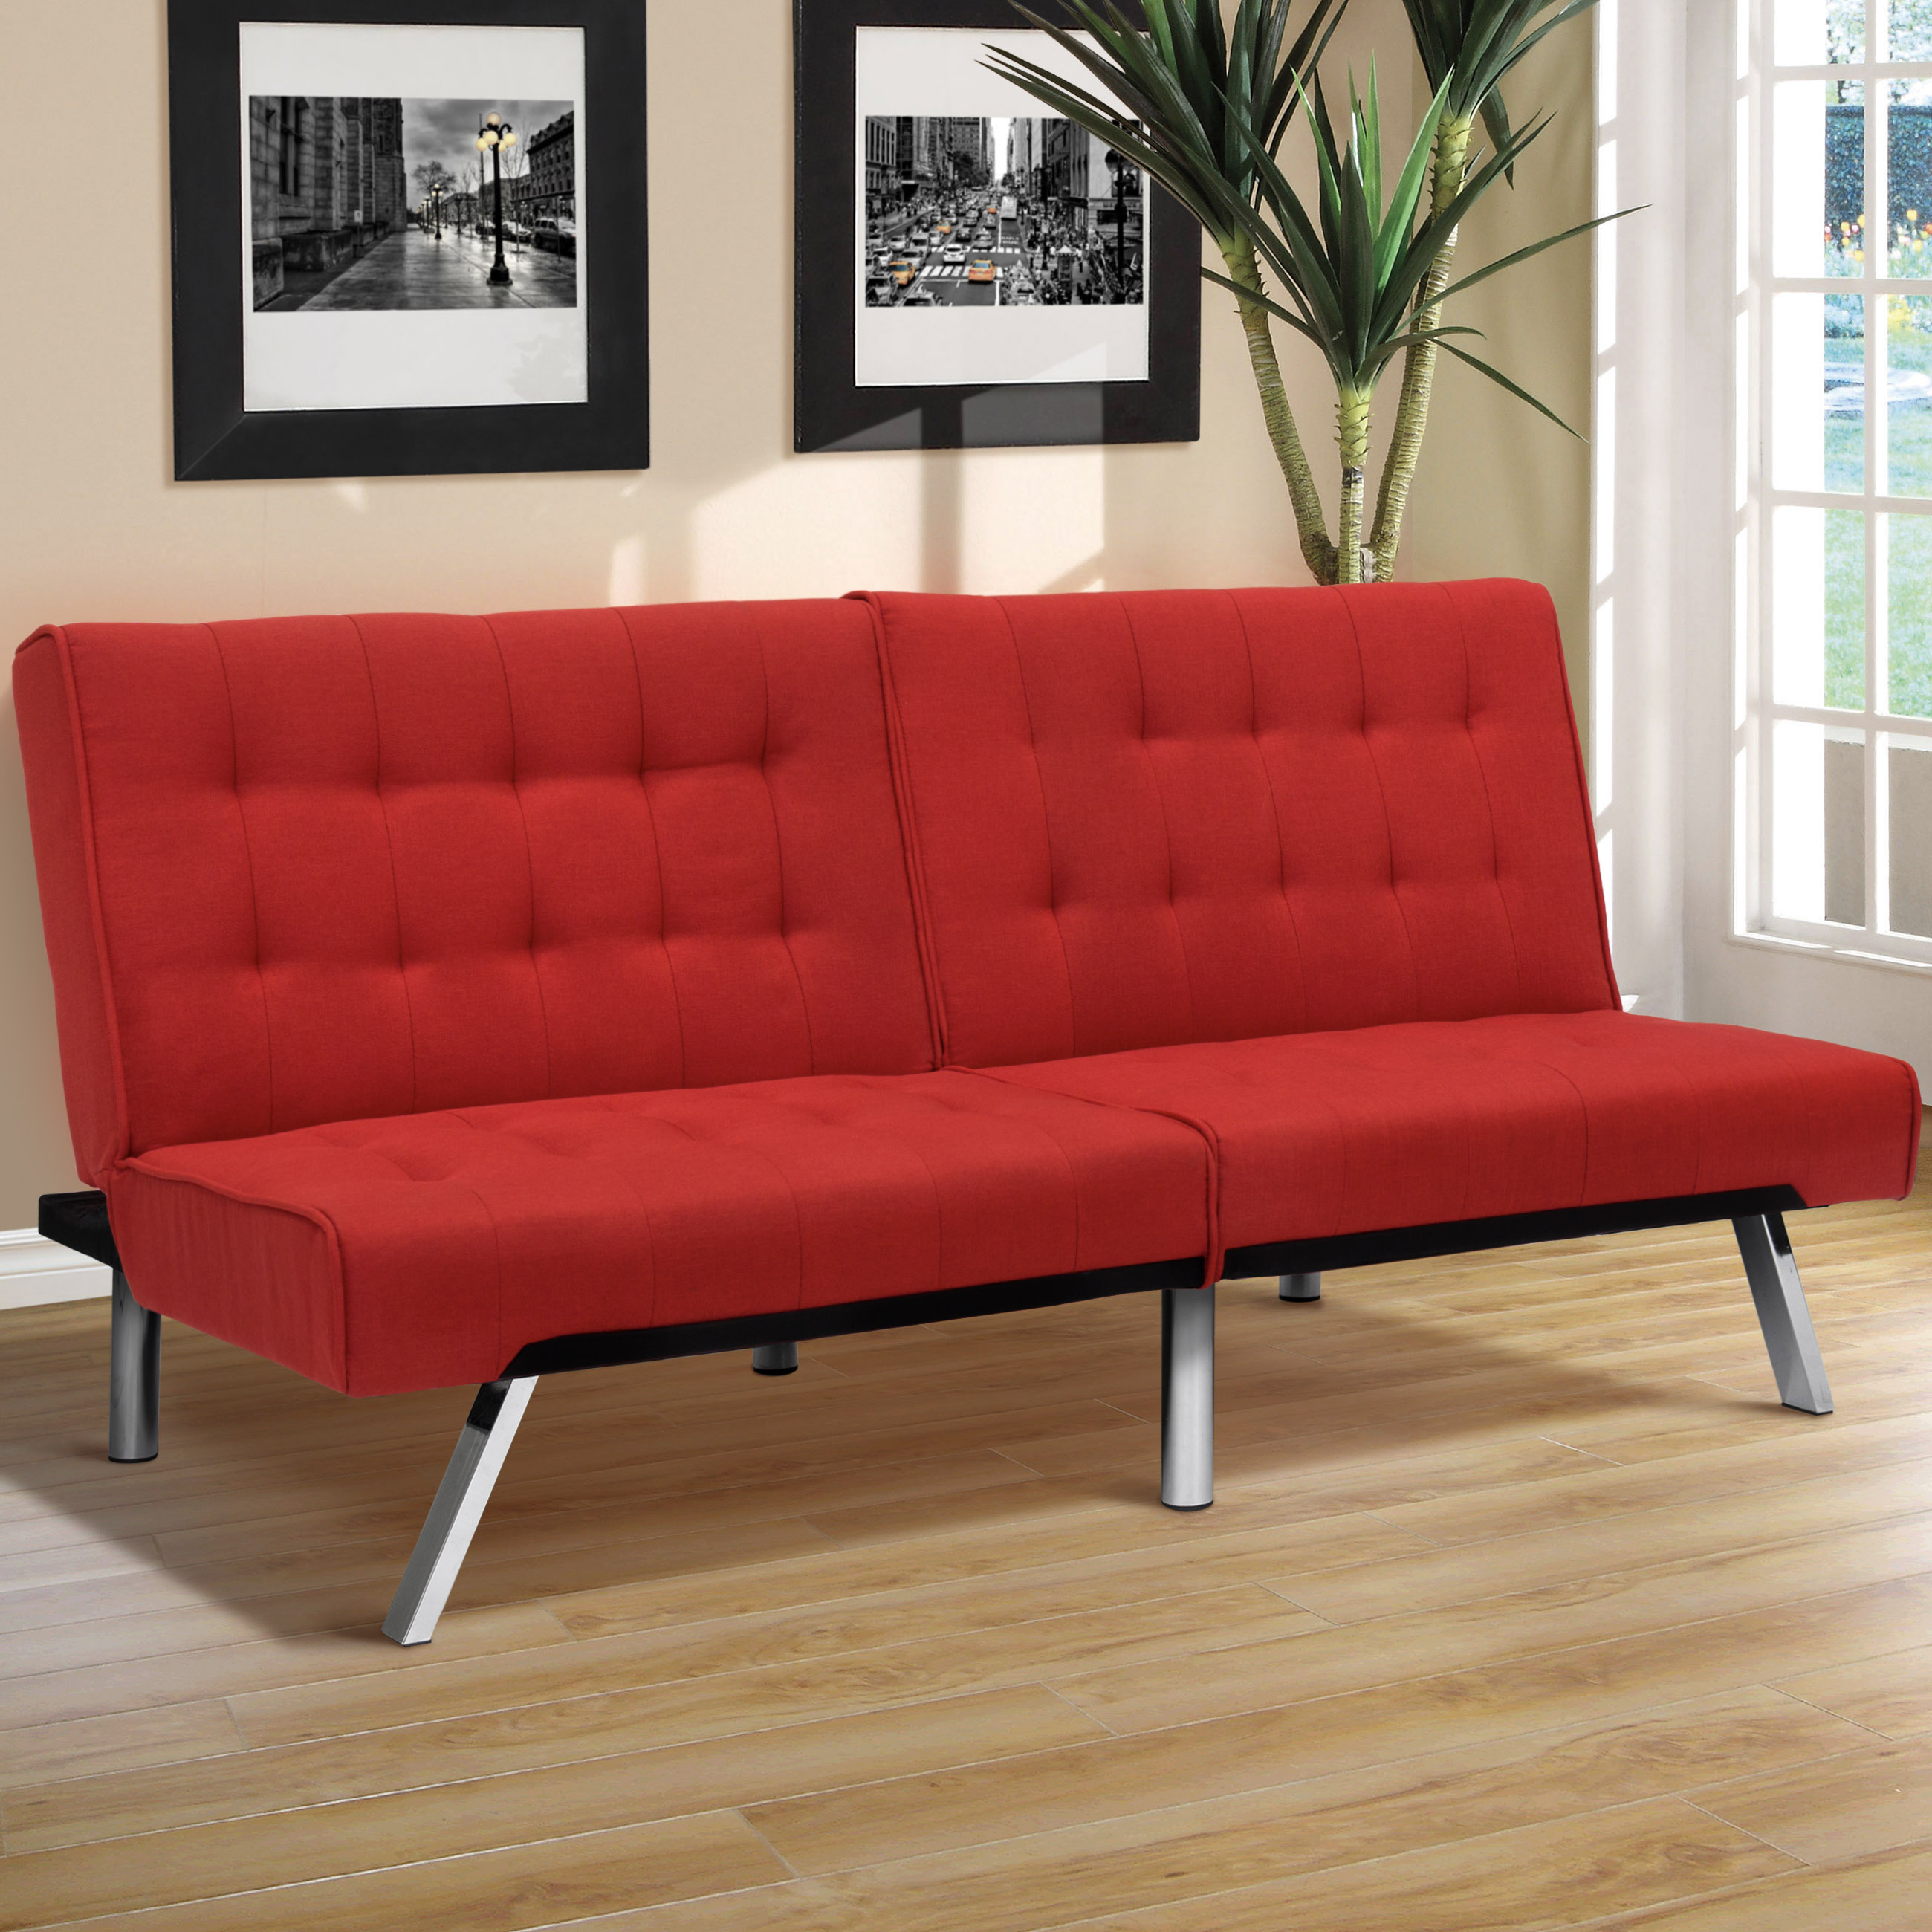 ... Best Choice Products Modern Linen Futon Sofa Bed Fold Up Down Couch  Recliner Lounger Sleeper Furniture ...